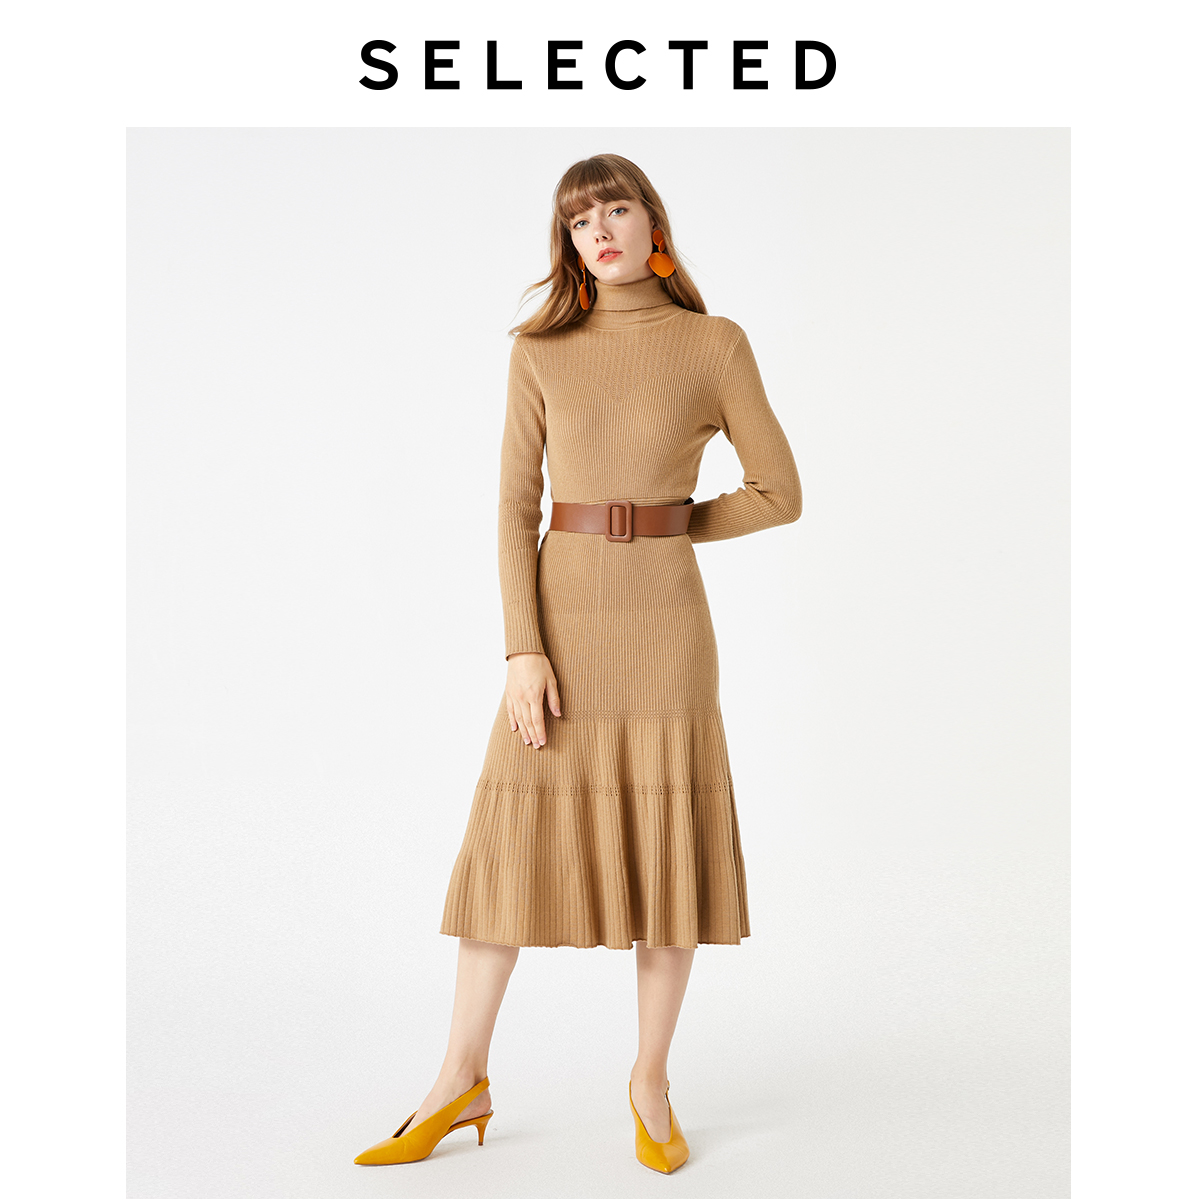 SELECTED Women's Slim Fit Umbrella Mid-length Knitted Dress S|419446505